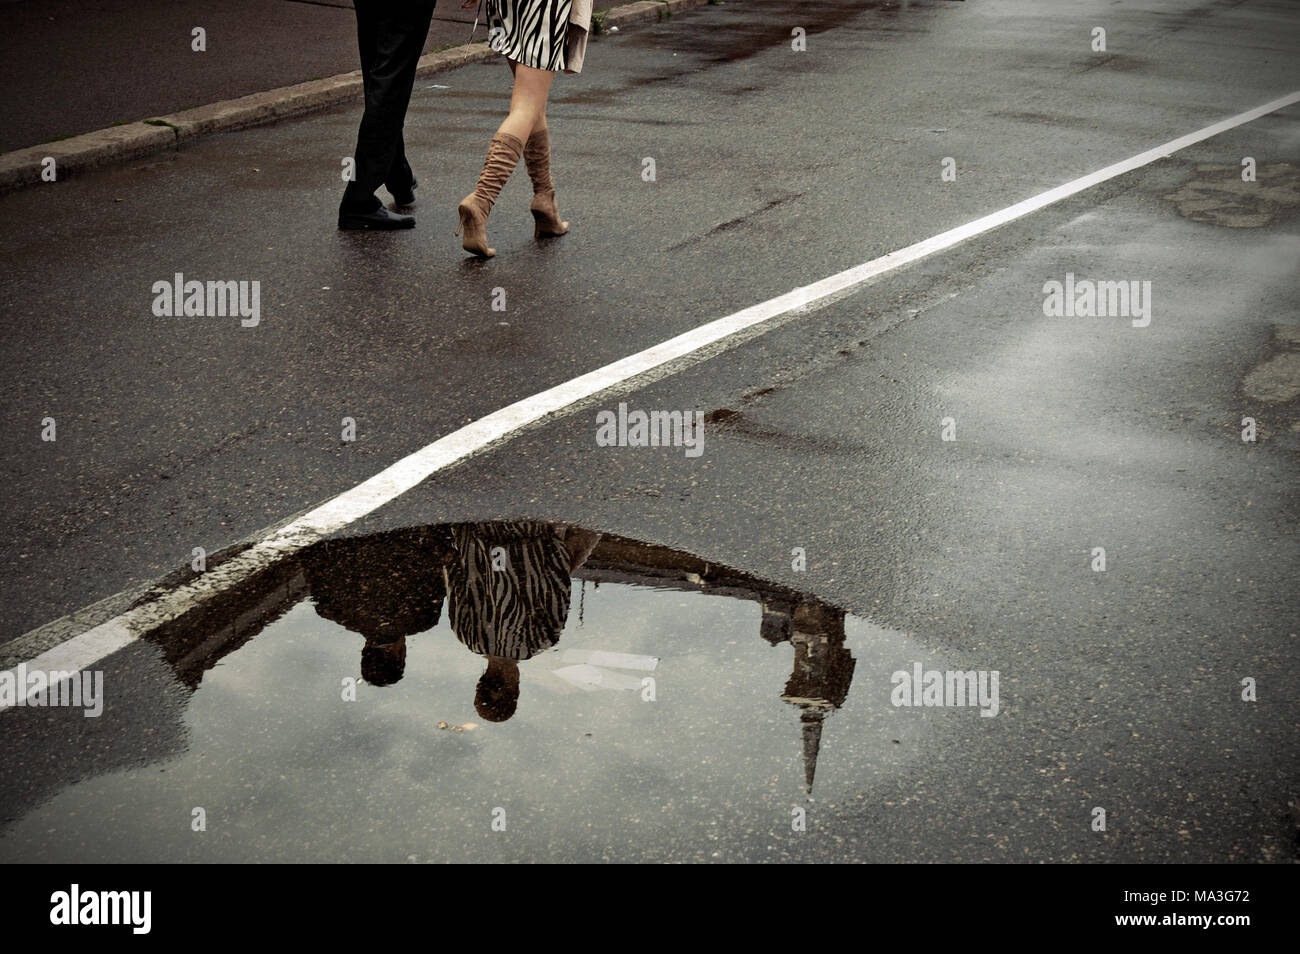 Reflection of a couple in a puddle afer rain, Helsinki, Finland Stock Photo